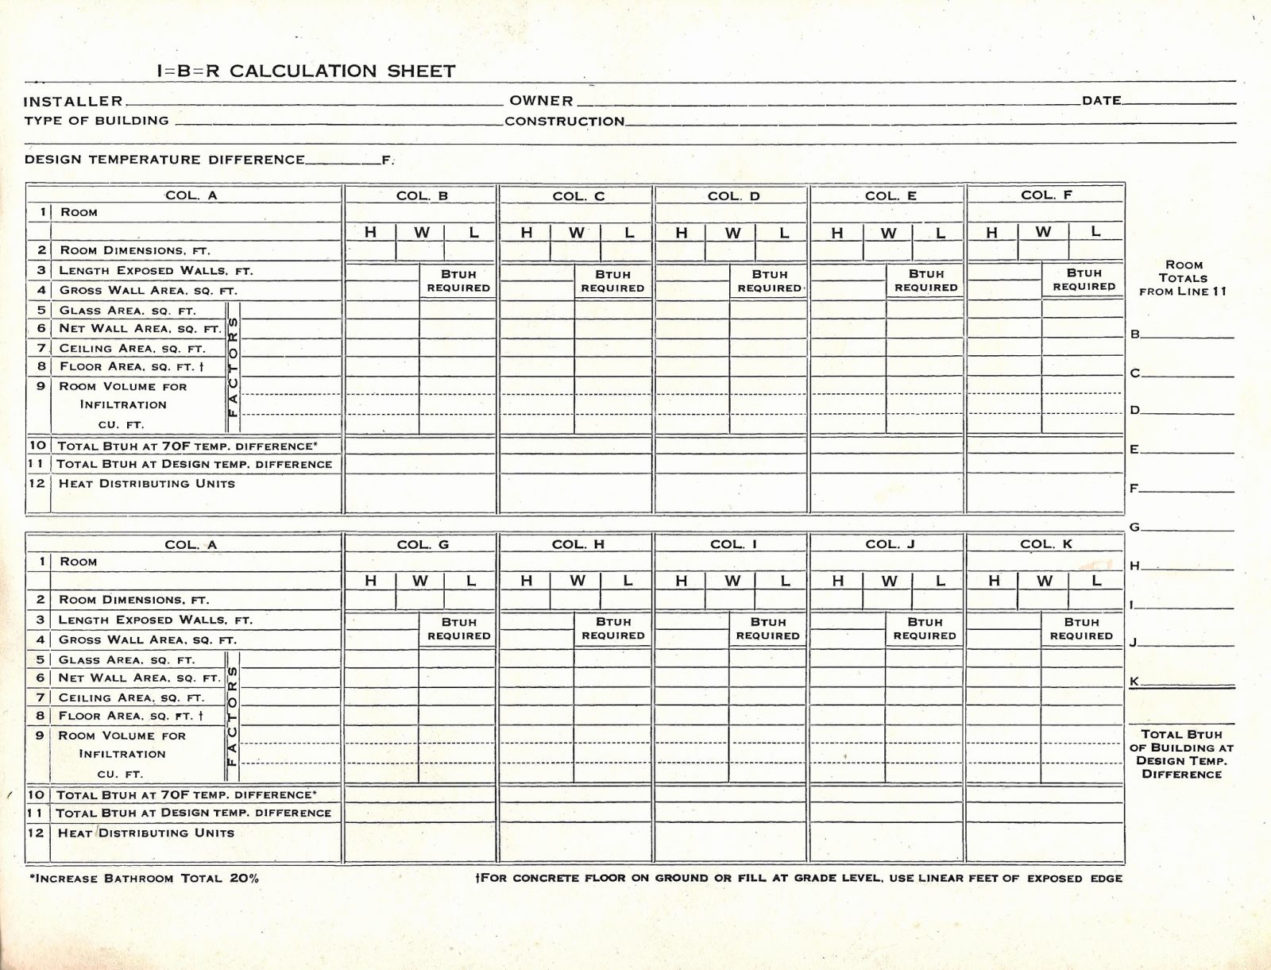 Manual D Spreadsheet In Spreadsheet Example Of Manual J Calculation Load For Hvac